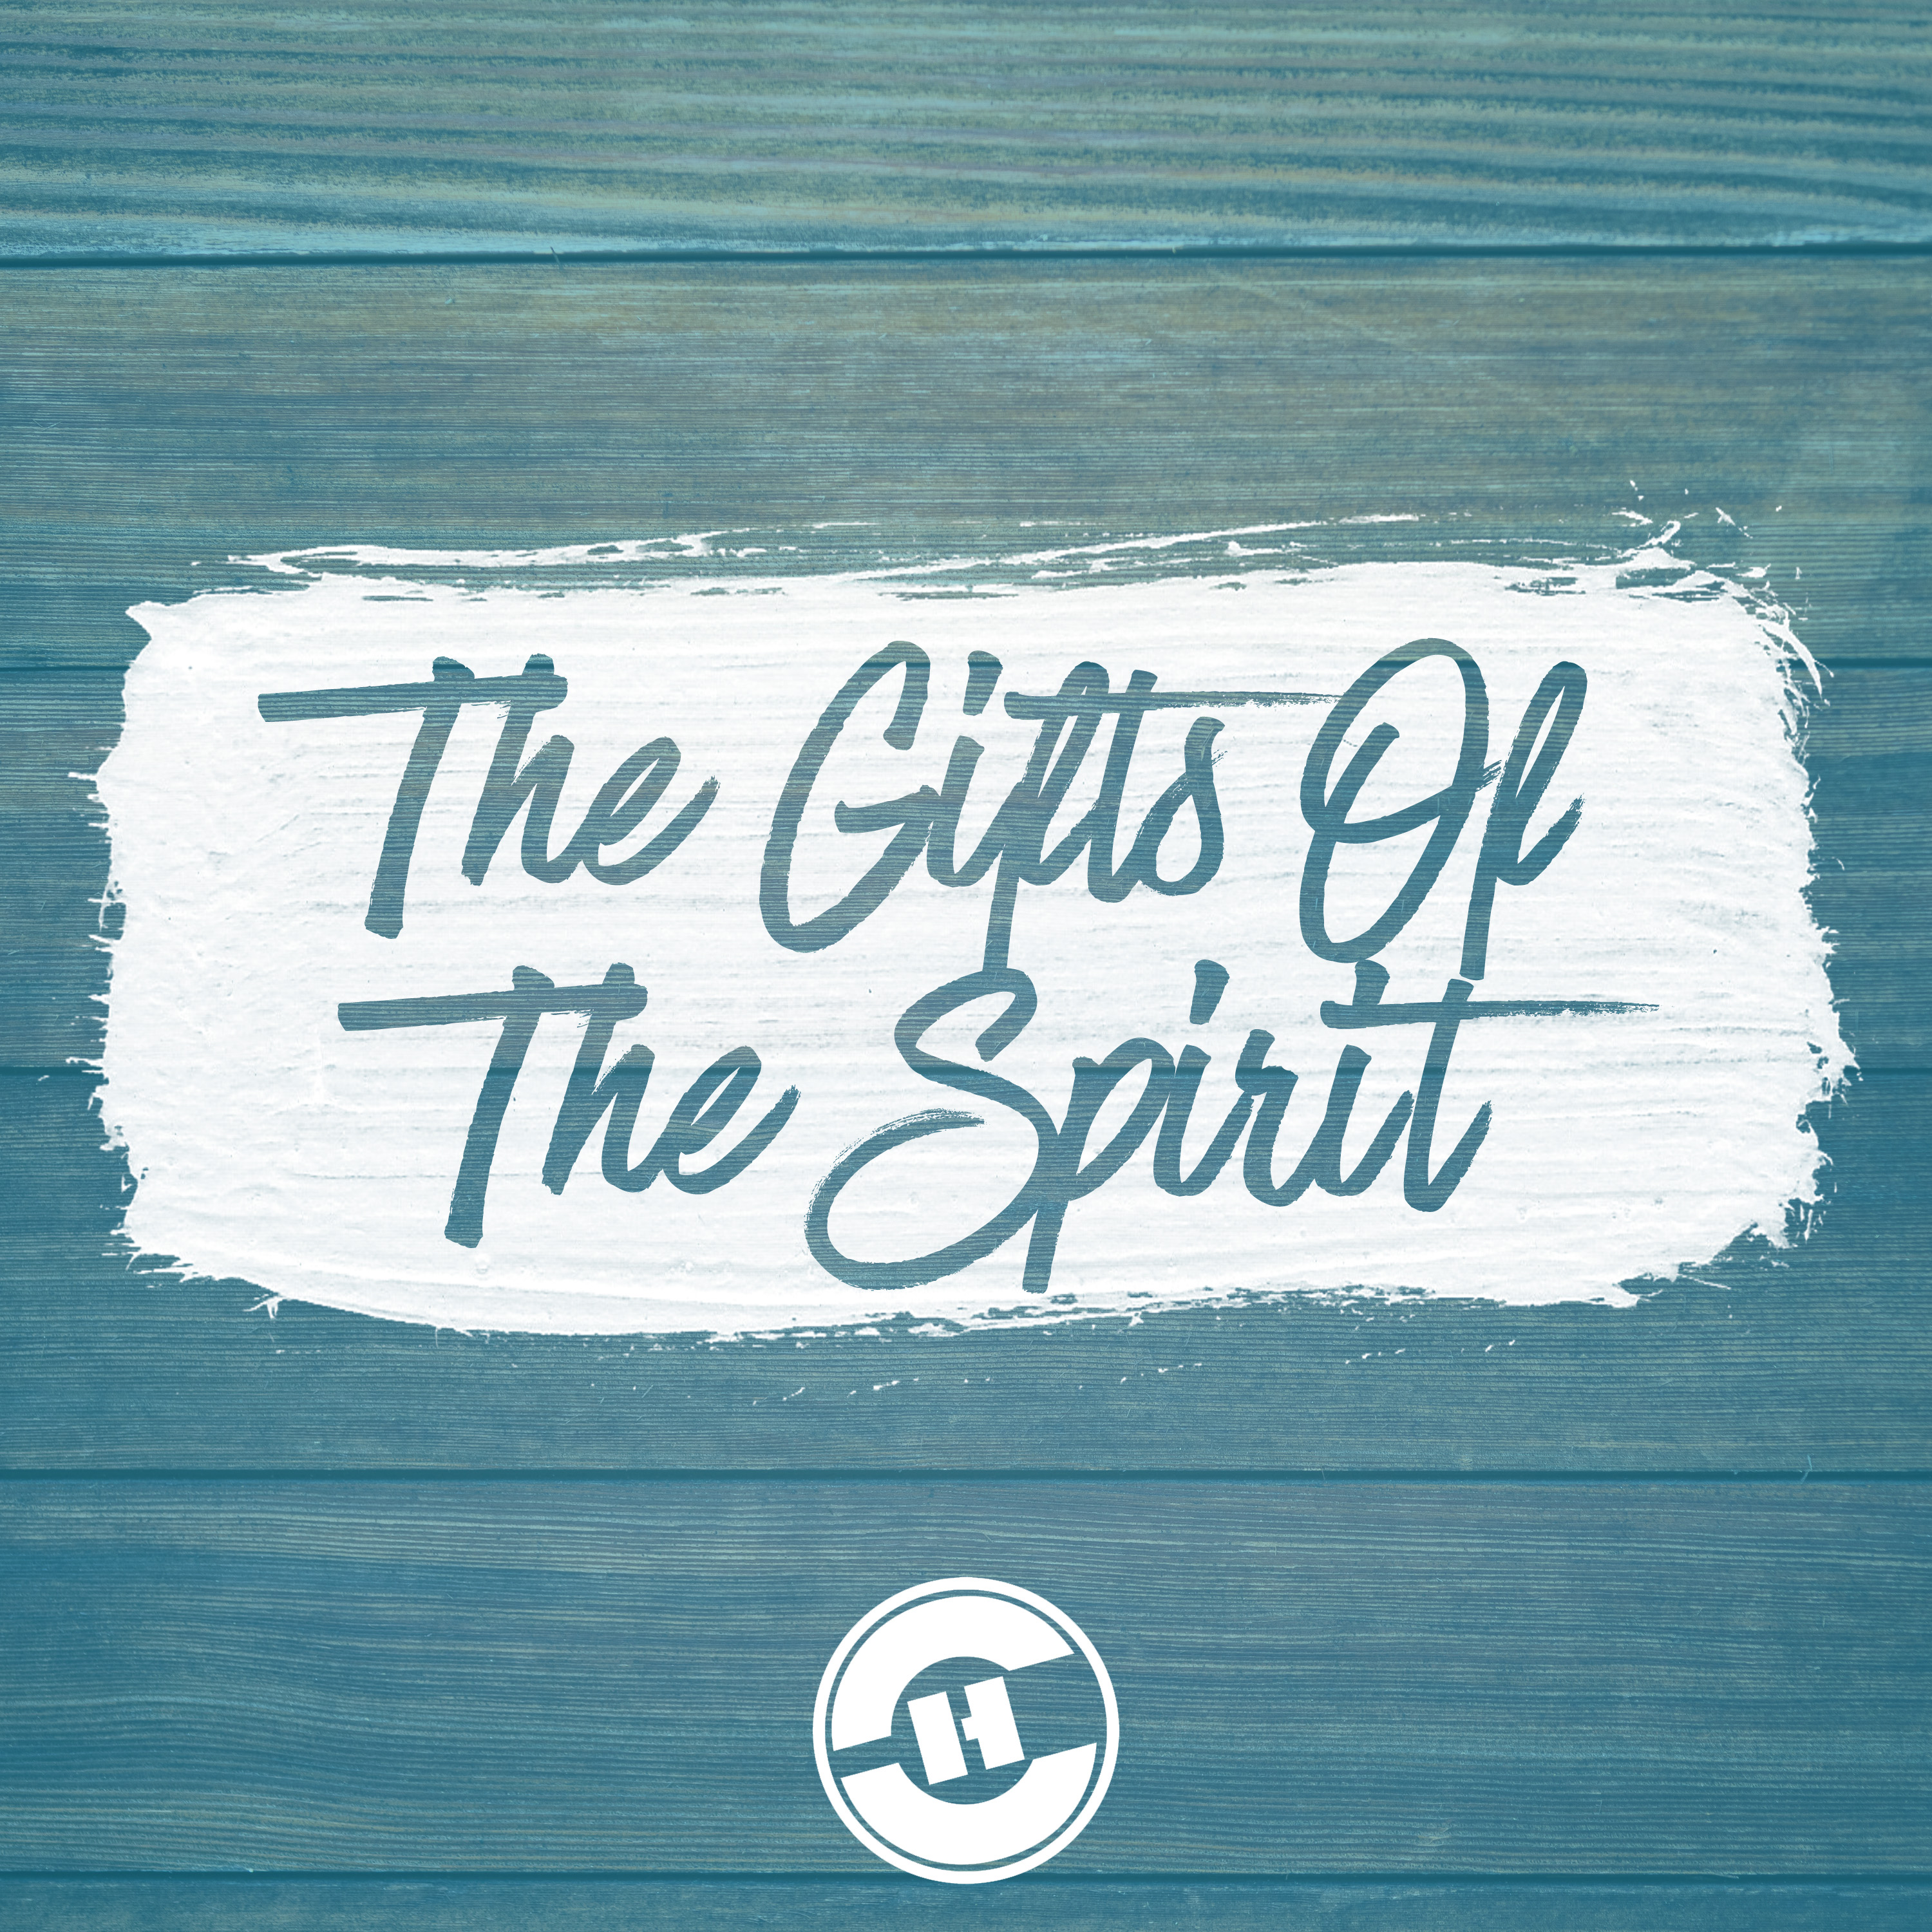 To Be Continued: The GIfts Of The Spirit